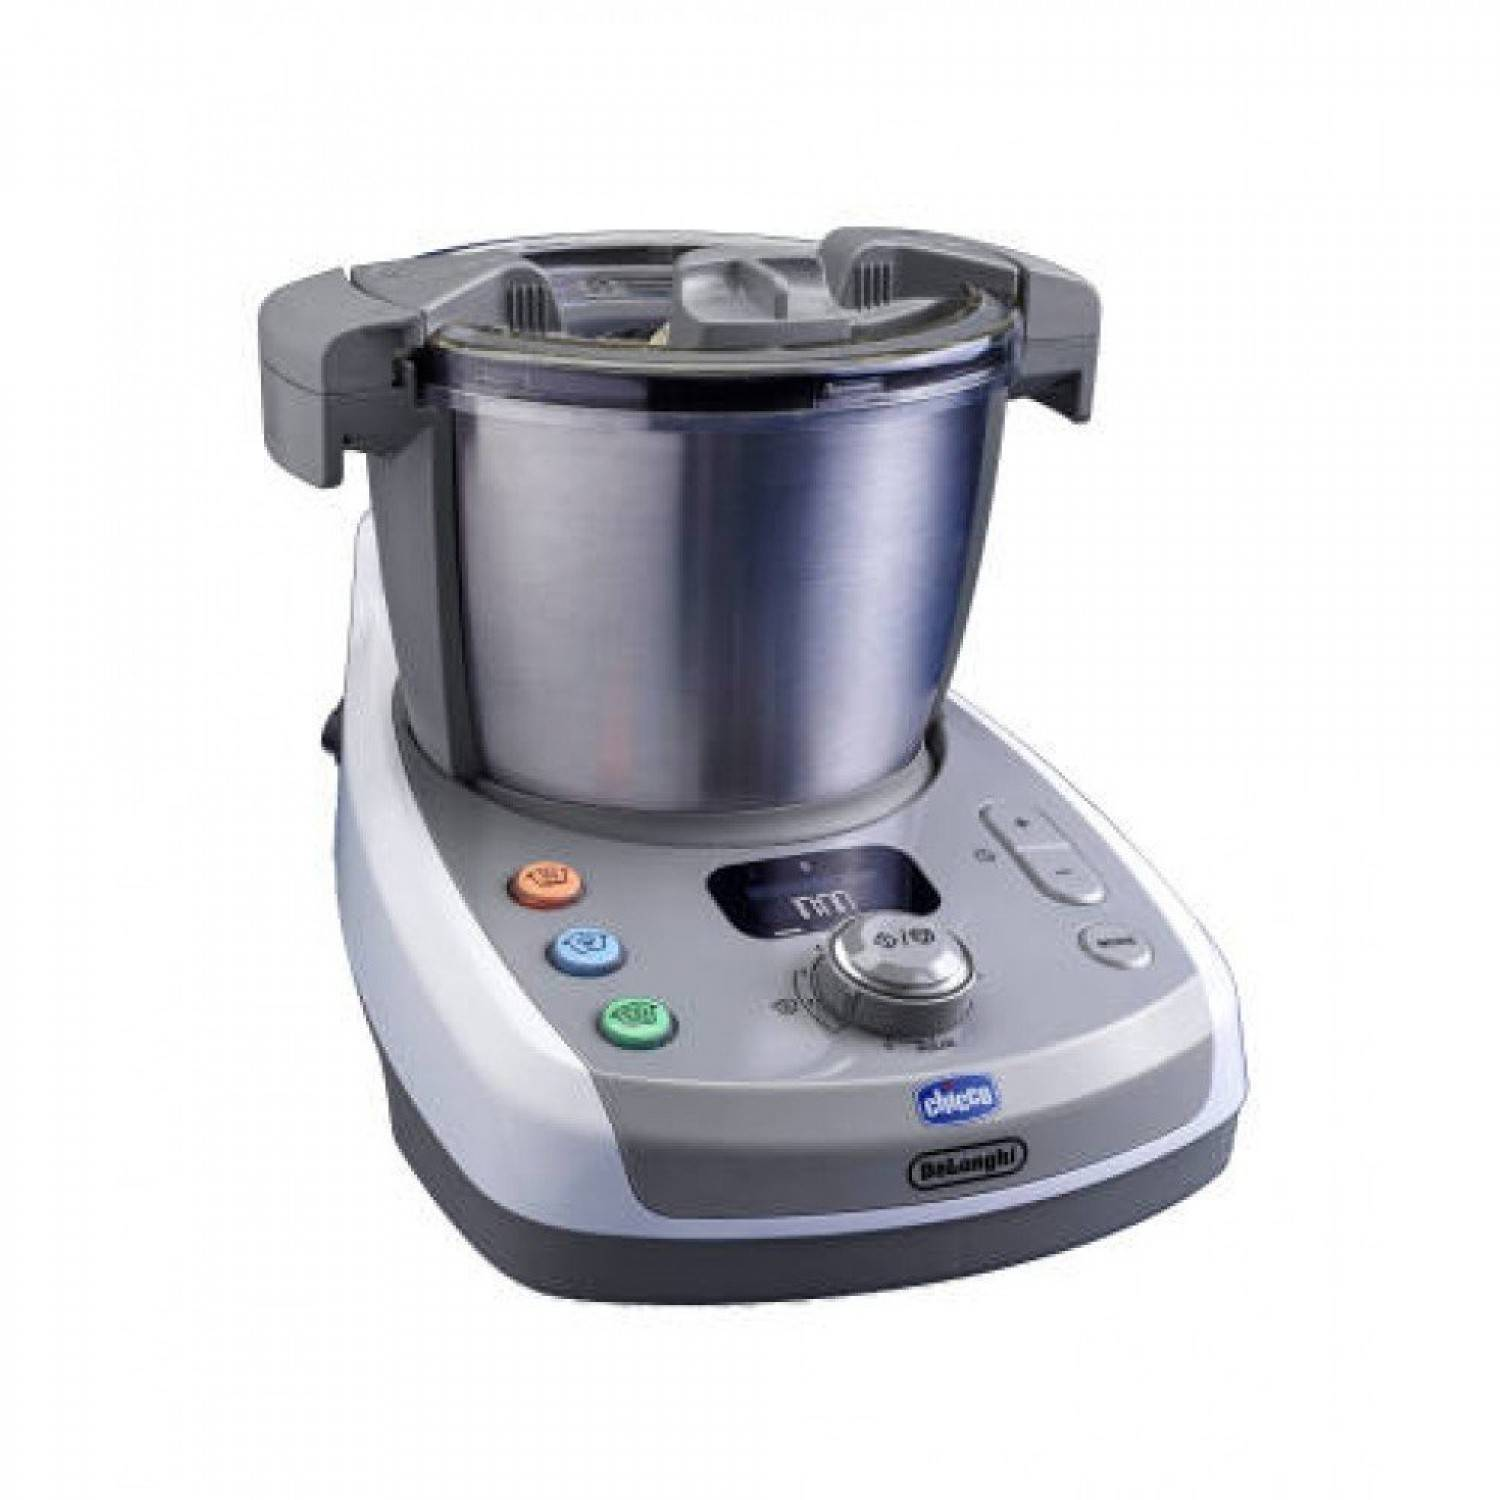 Chicco Robot Cuiseur Mixeur Multifonction Chicco Delonghi And Me Bleu